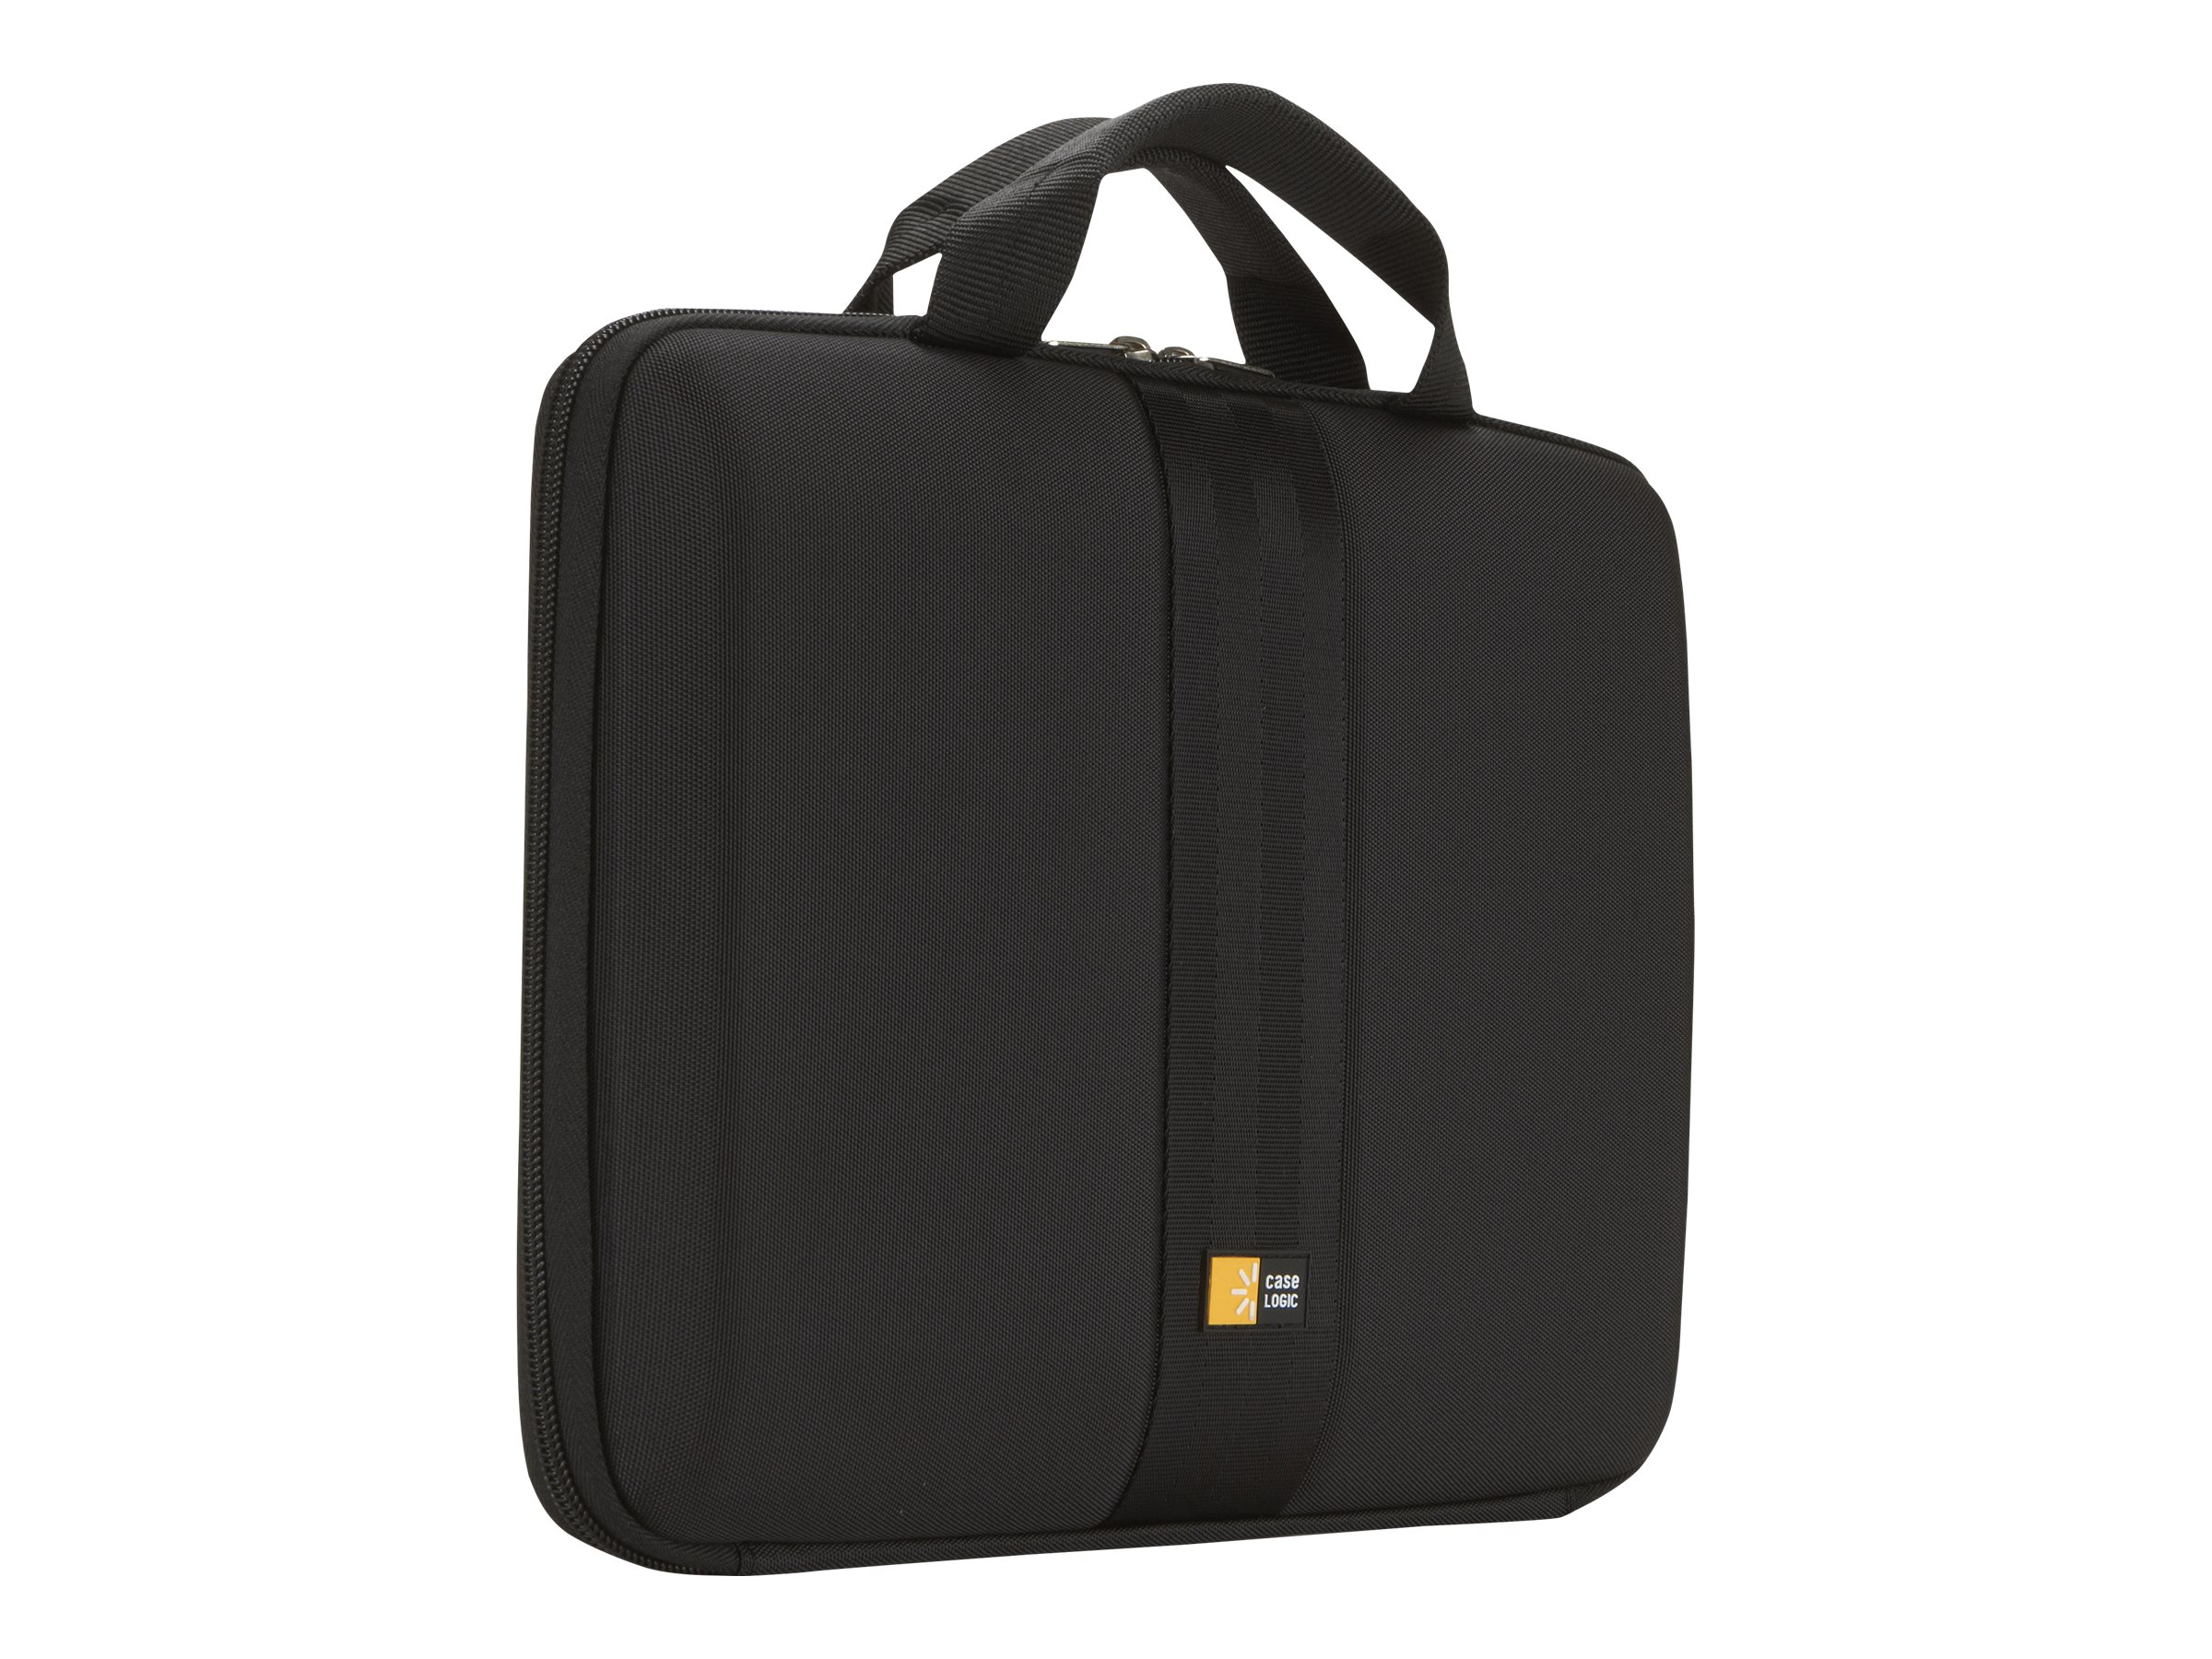 Case Logic 12 Molded Chromebook Tablet Sleeve Case, Black, QNS-111BLACK, 11819935, Carrying Cases - Notebook